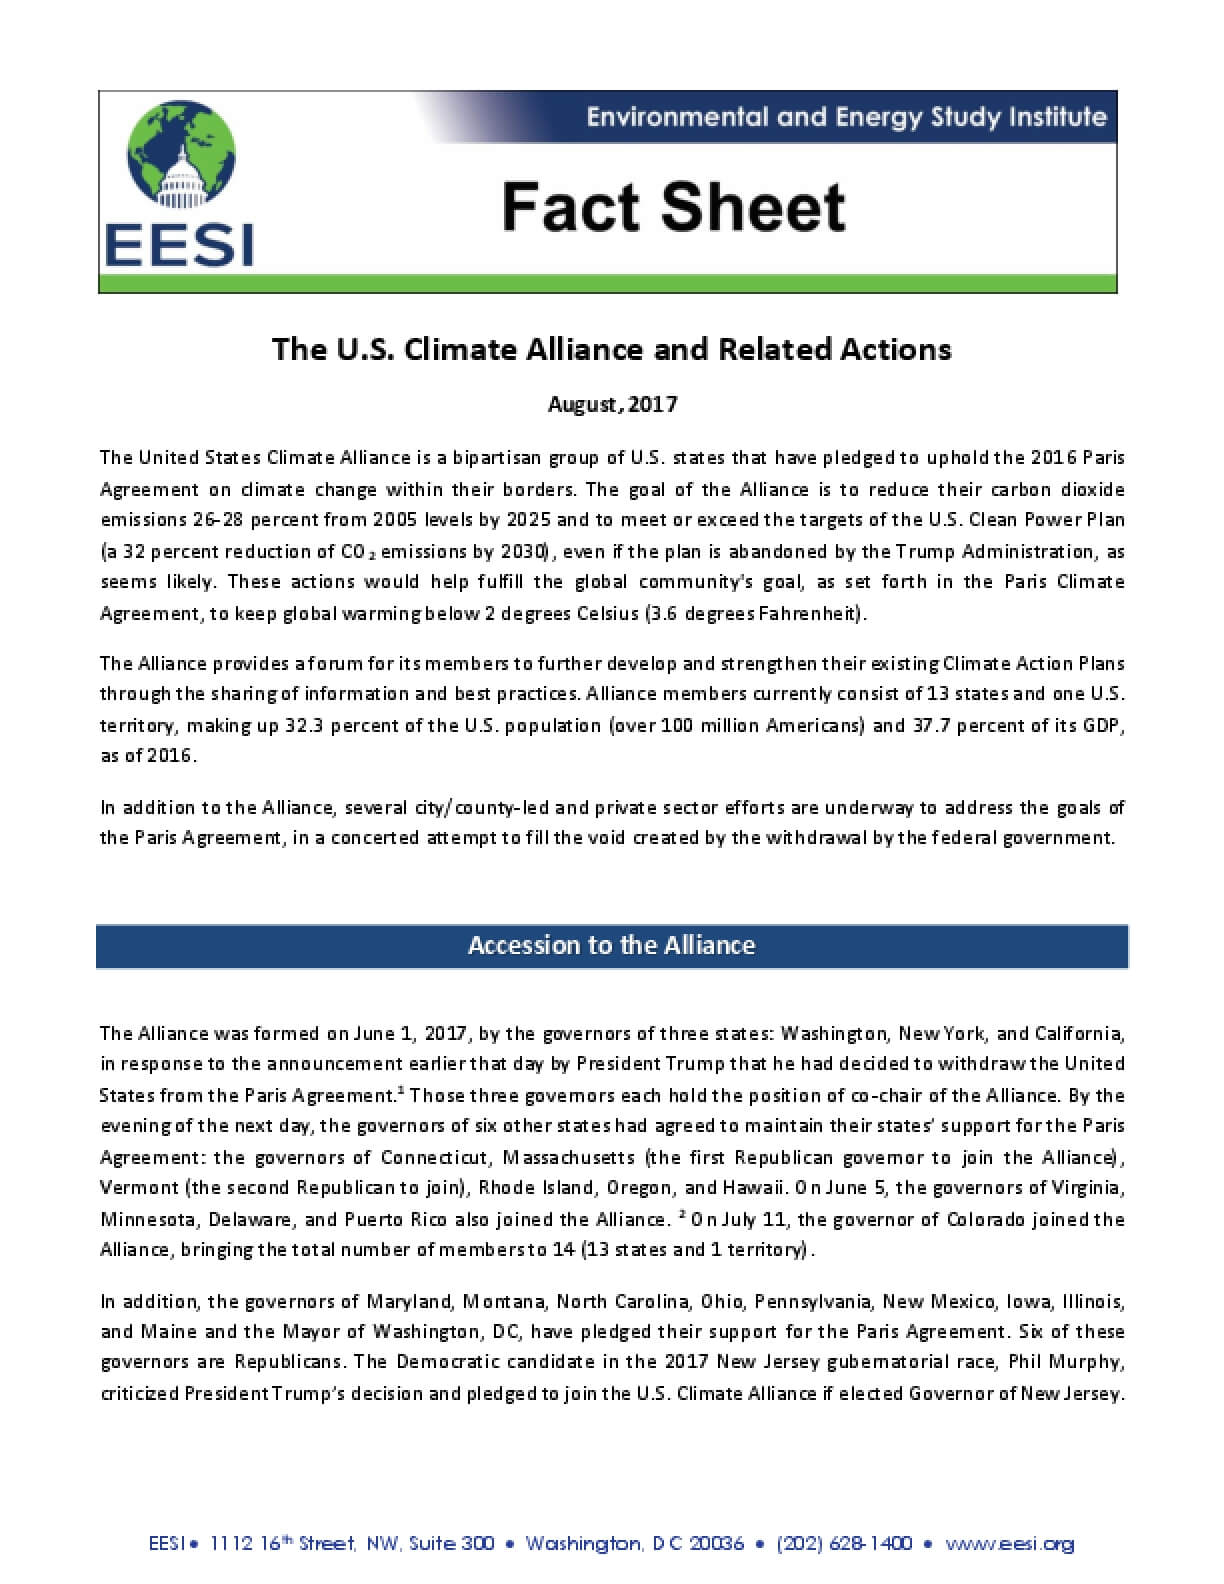 Fact Sheet: The U.S. Climate Alliance and Related Actions